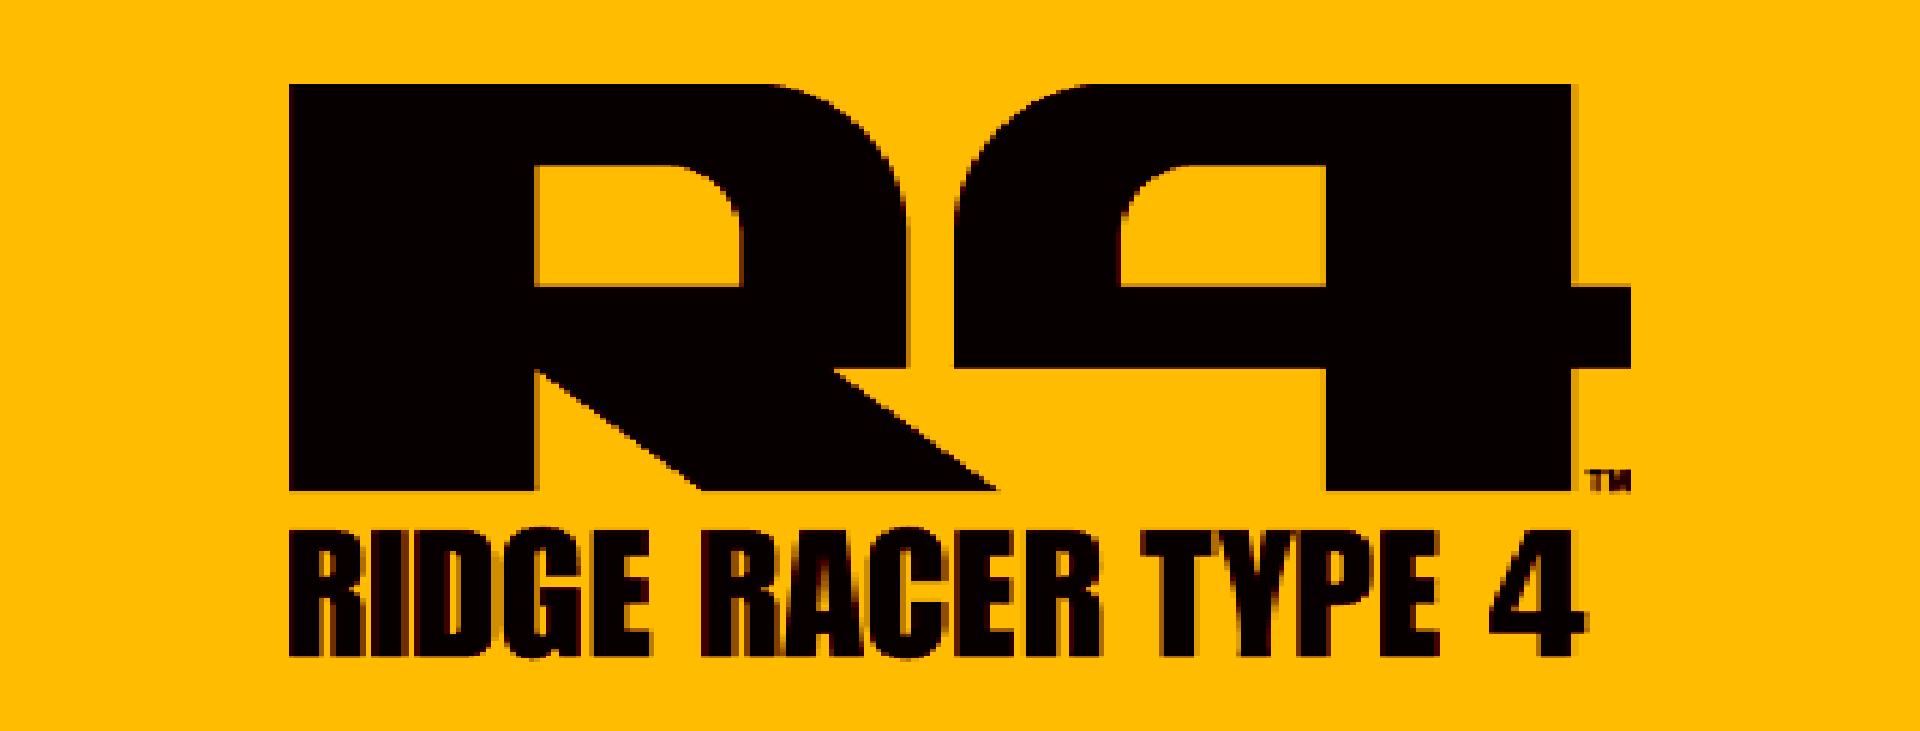 Ridge Racer Type 4 (R4) logo, a game which featured the song Naked Glow.